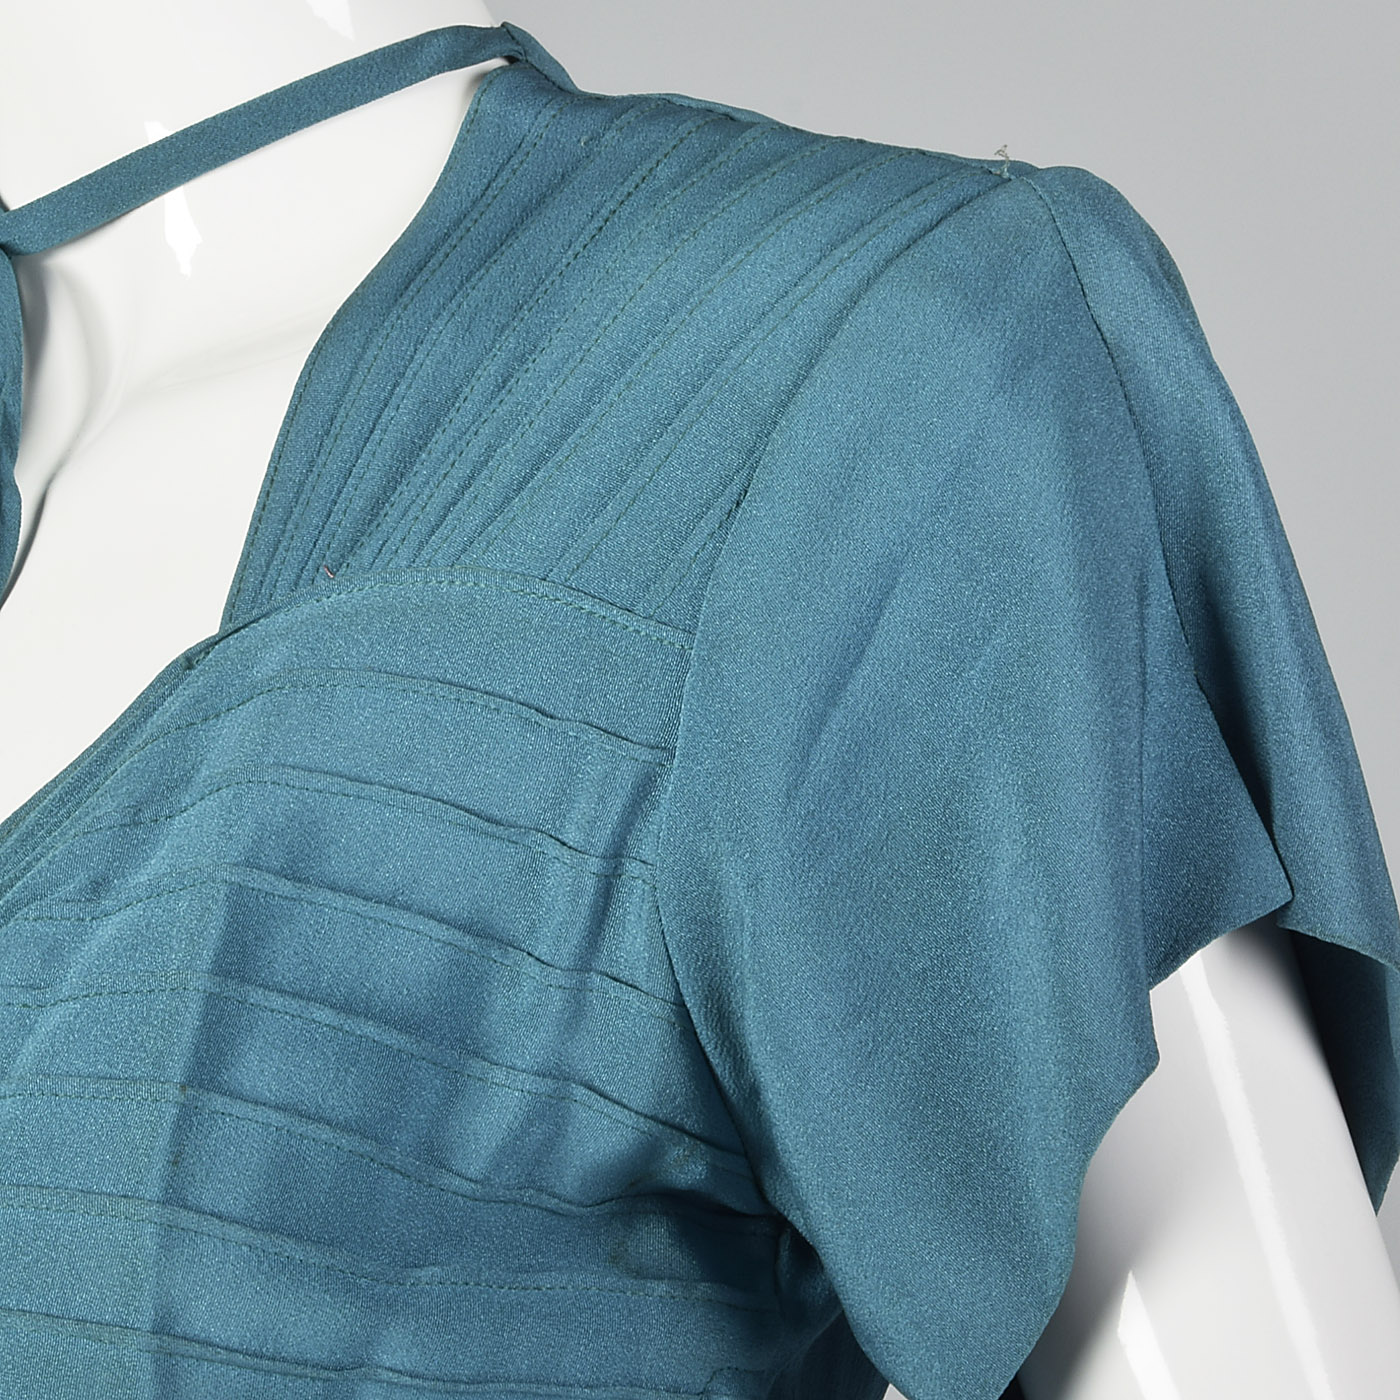 1940s Teal Rayon Dress with Neck Tie